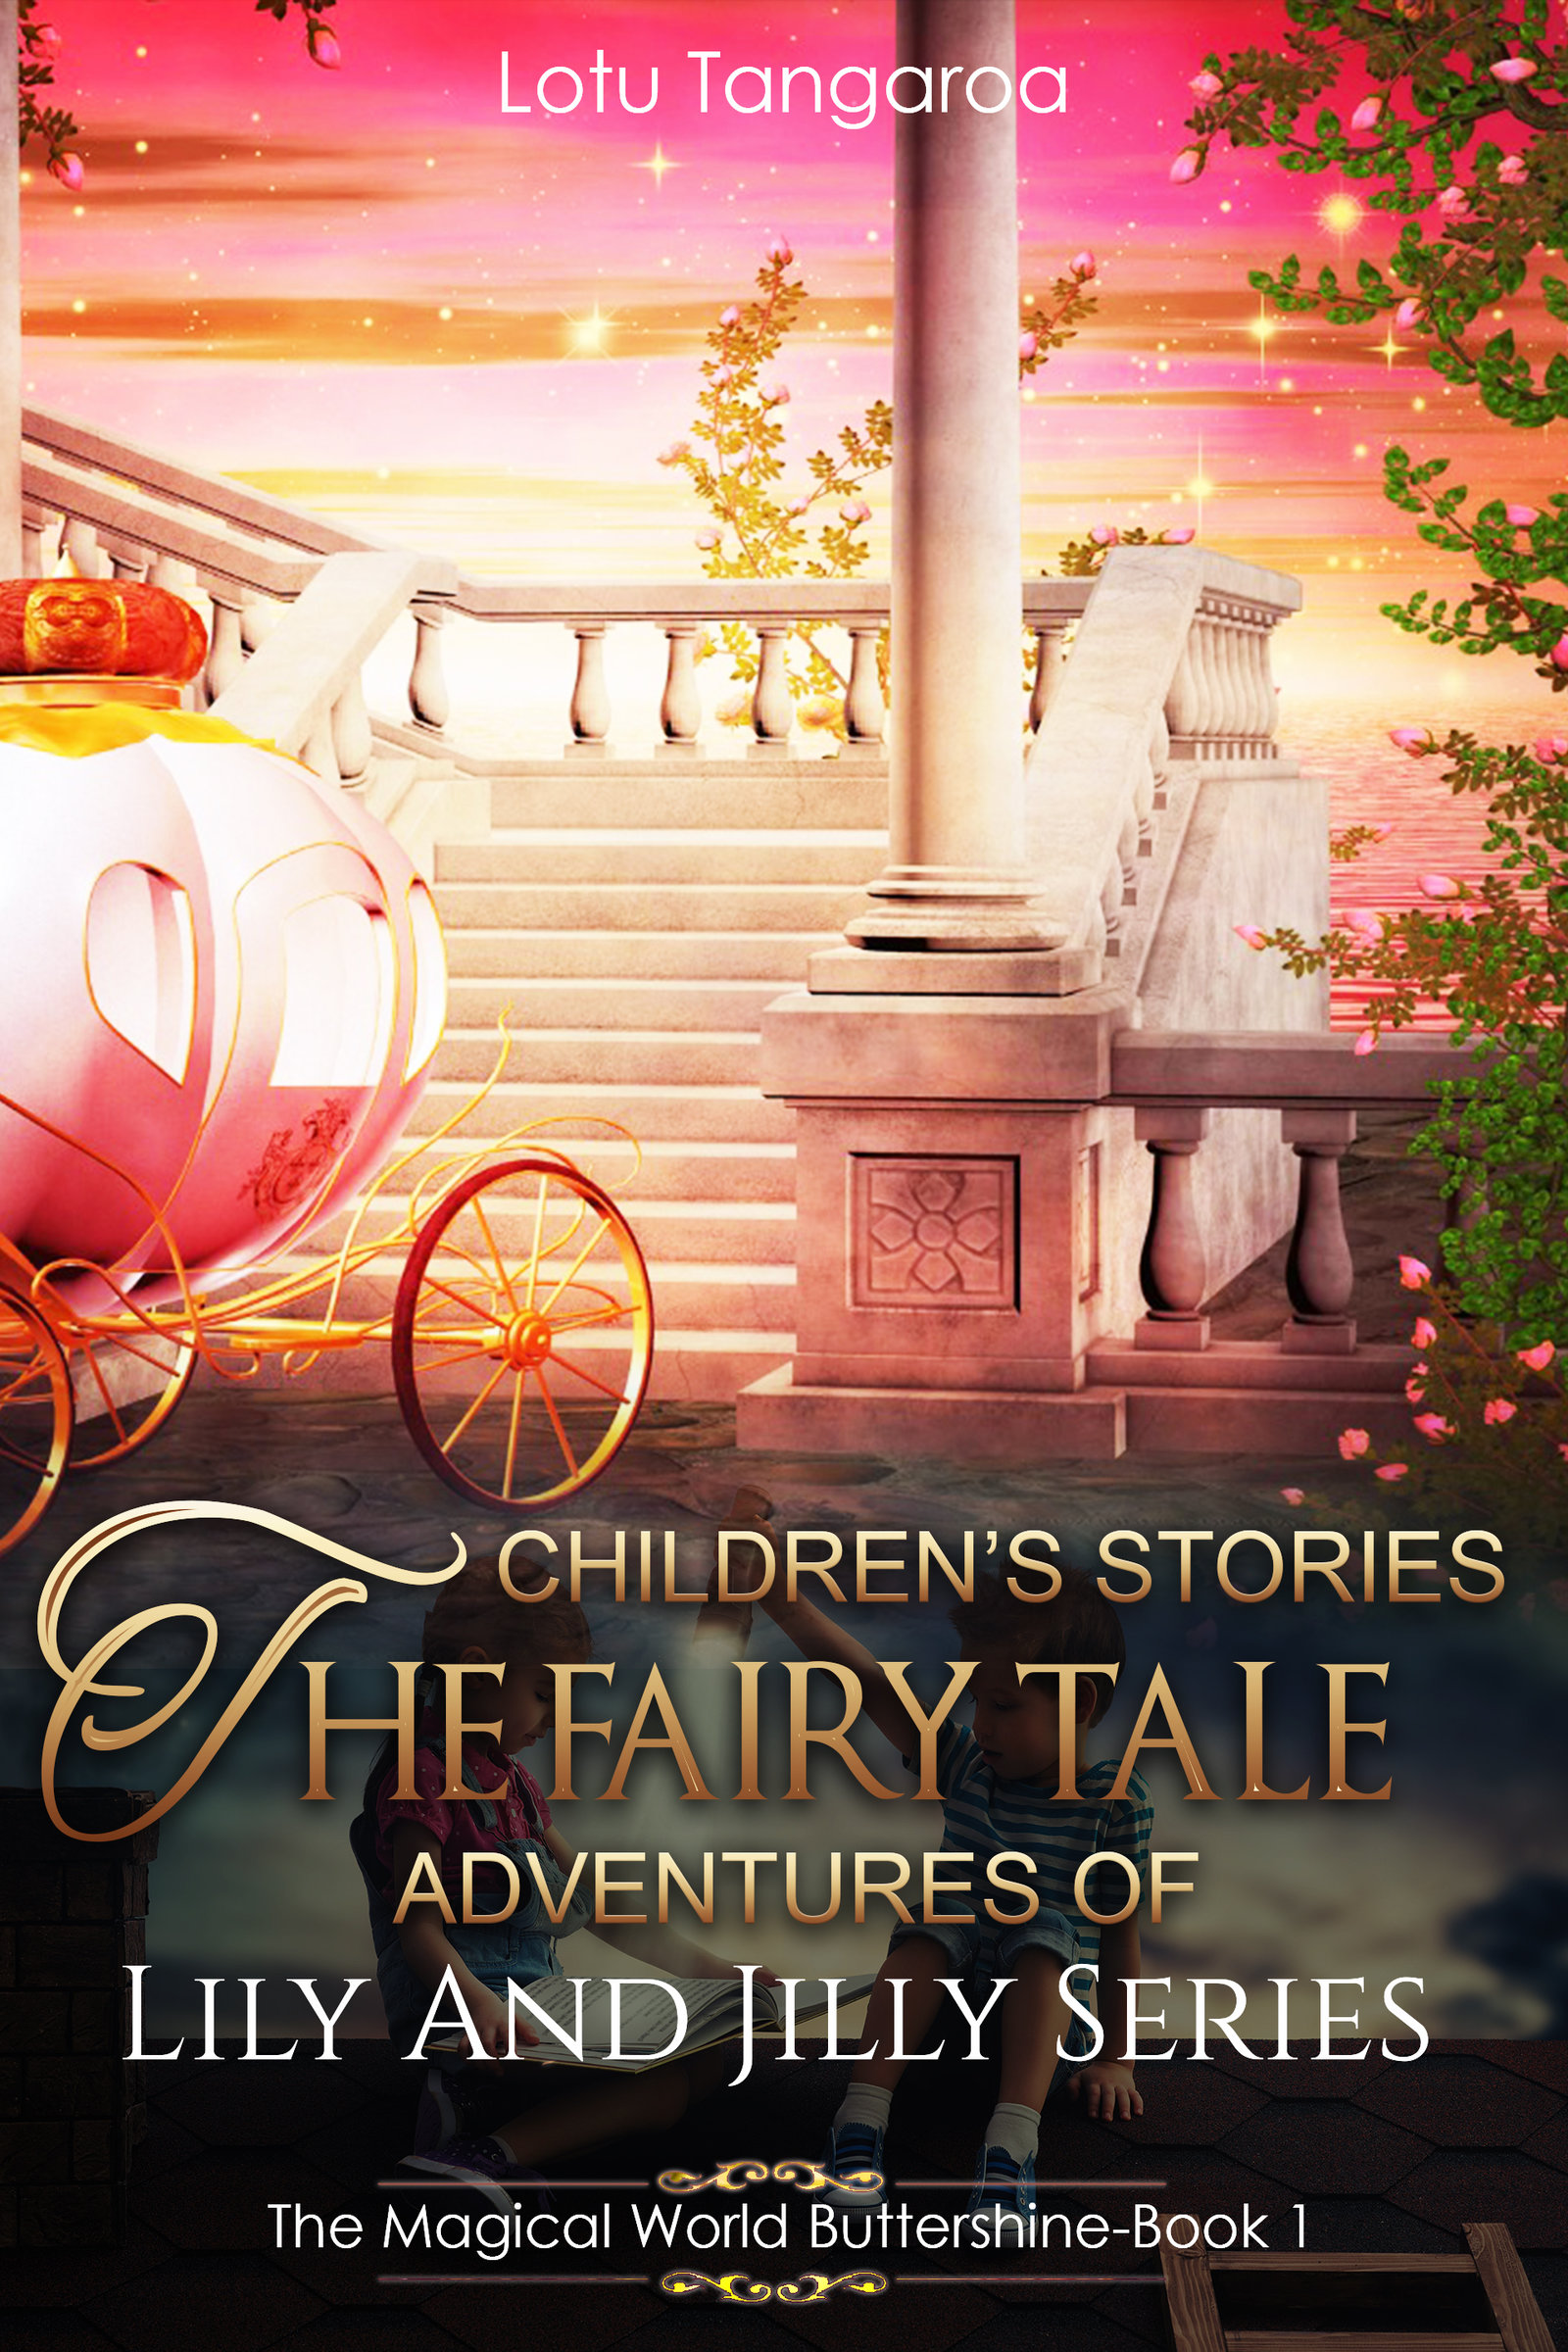 Children's Stories: The Fairy Tale Adventures of Lily And Jilly Series – Book 1 – The Magical World Buttershine